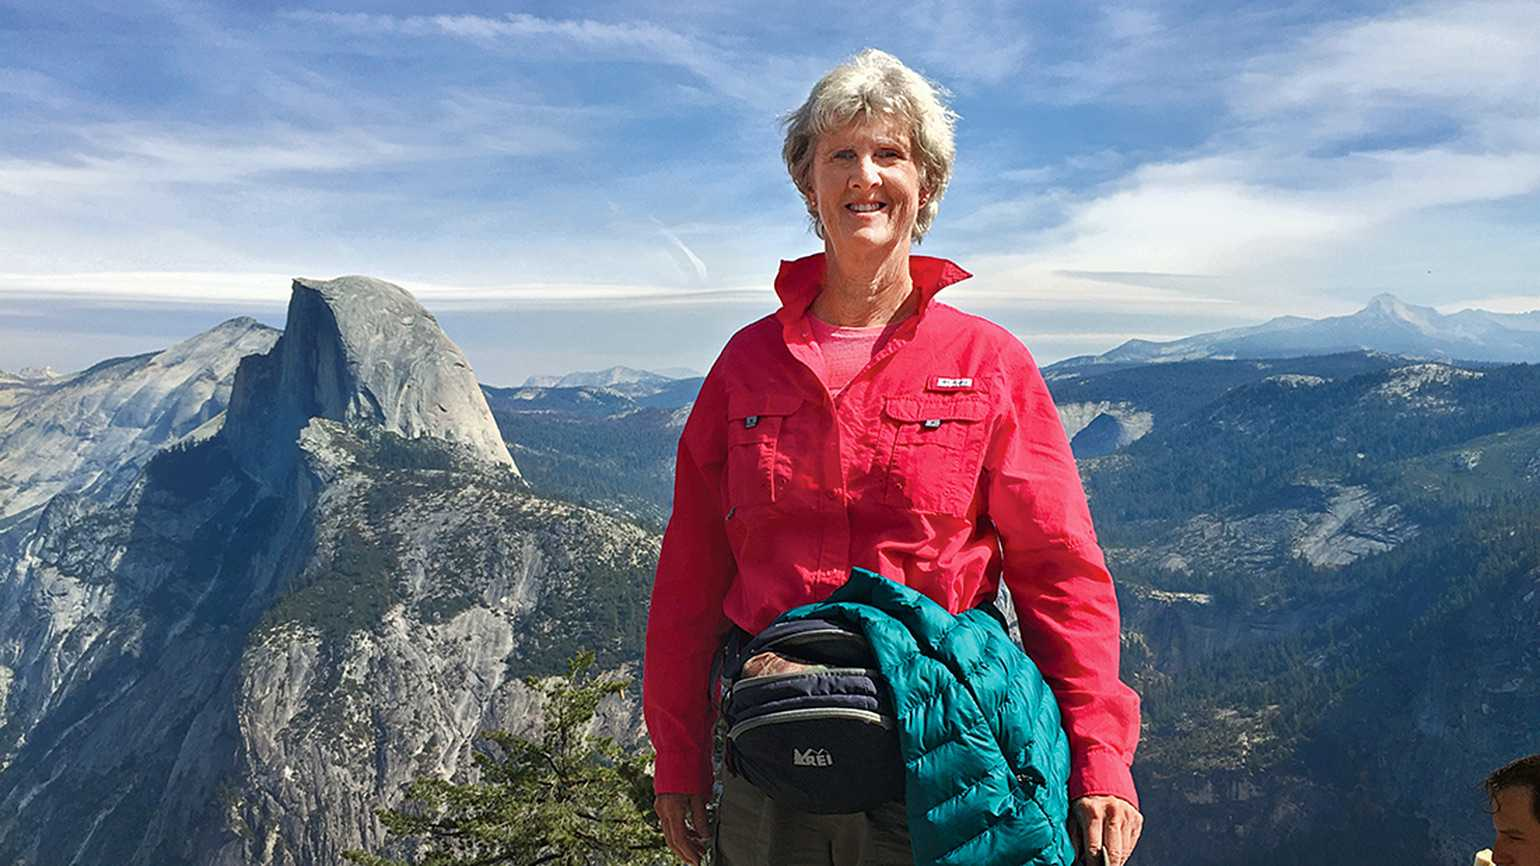 Jo-Anne Graham at Yosemite National Park